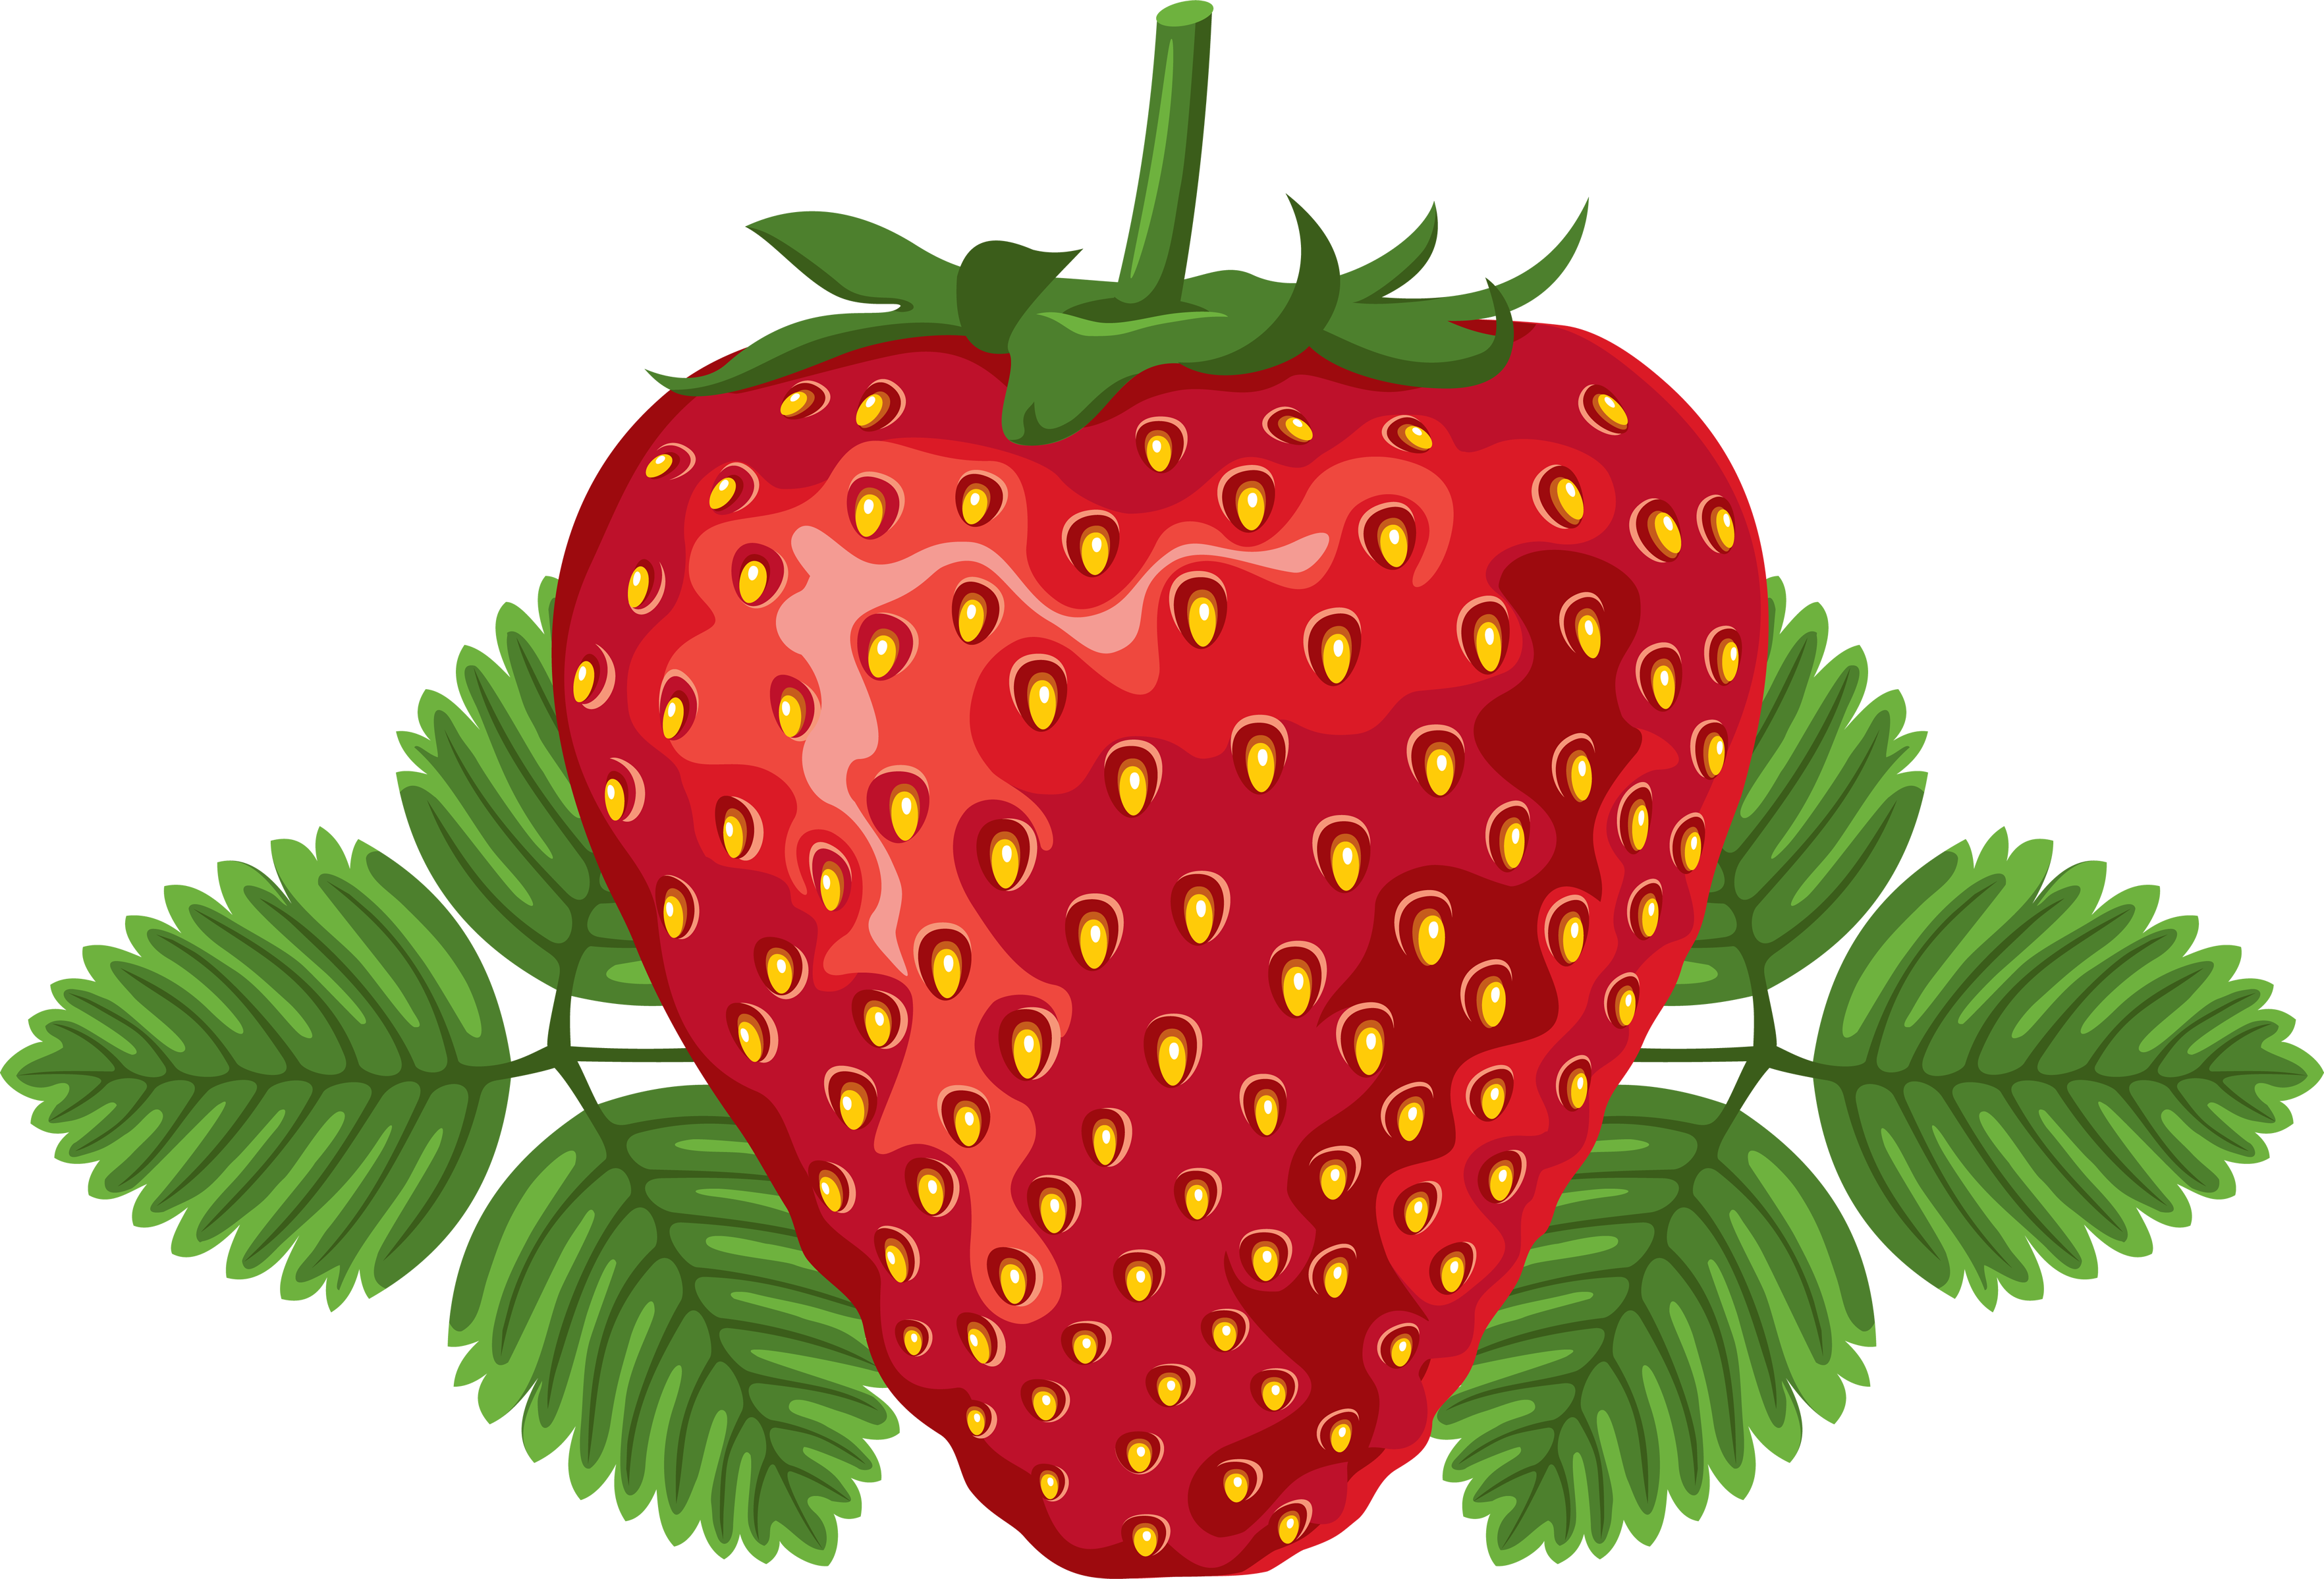 Png image without background. Eyes clipart strawberry